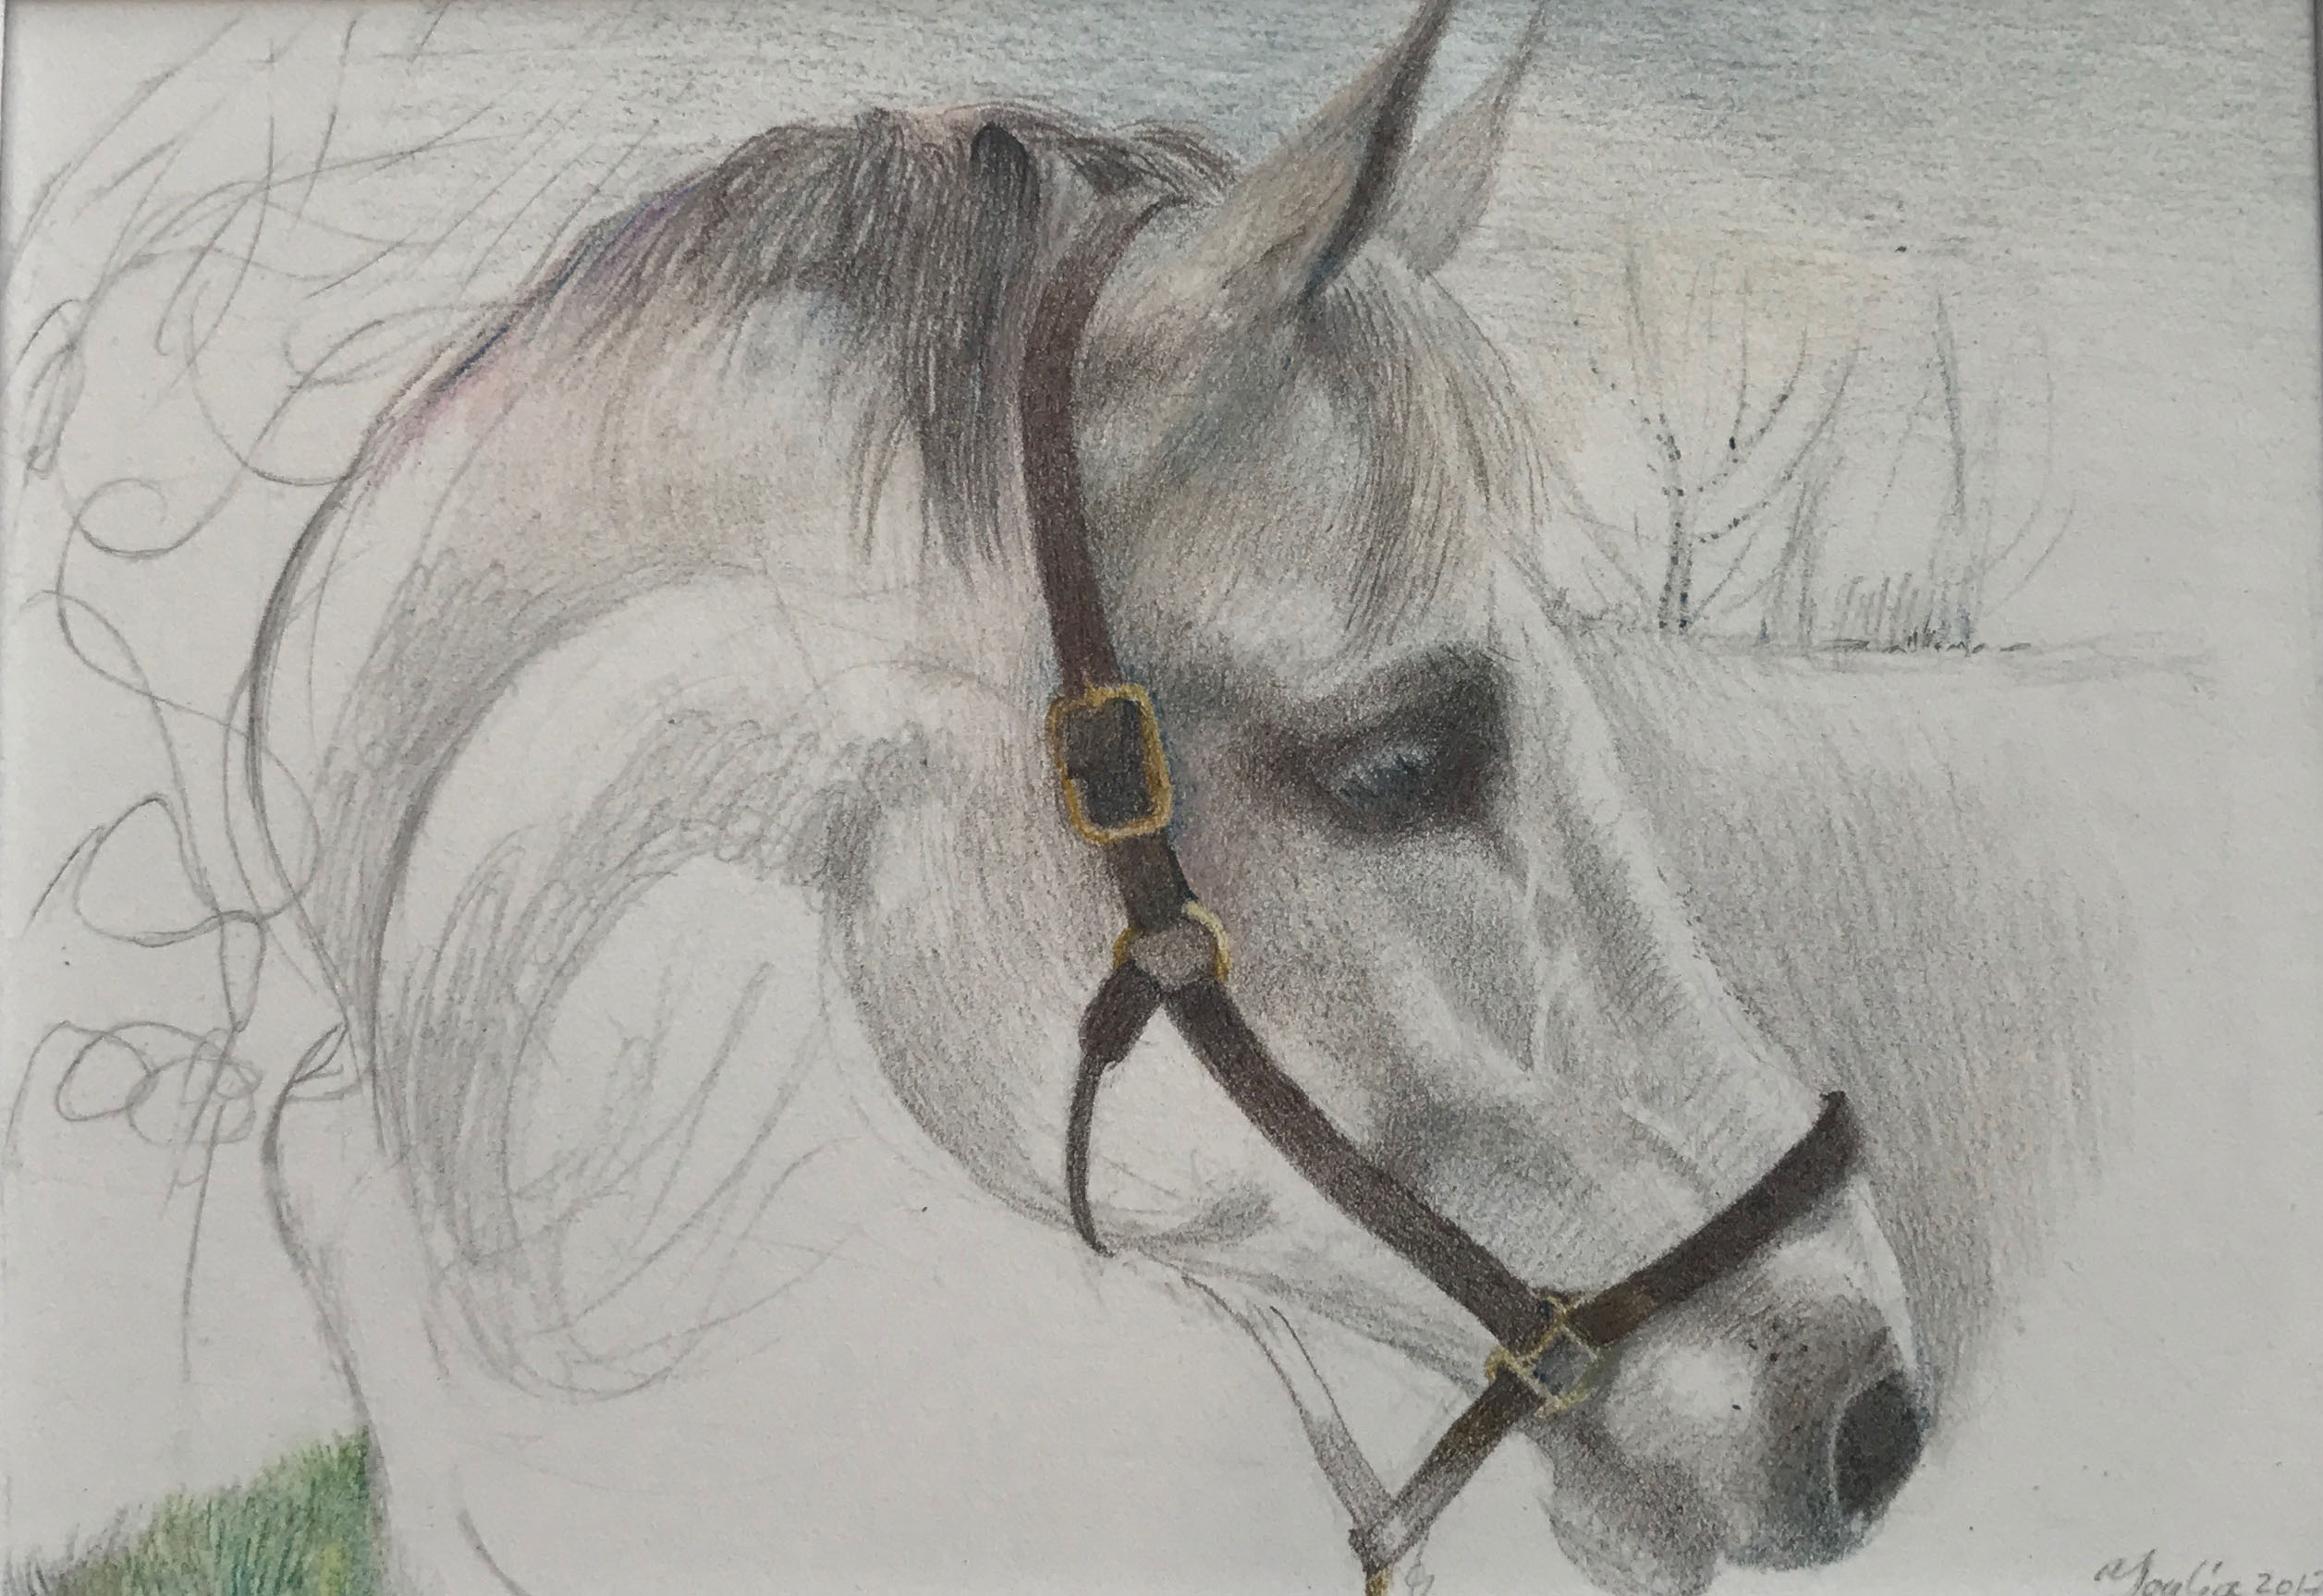 007 'Horse' Pencil Drawing